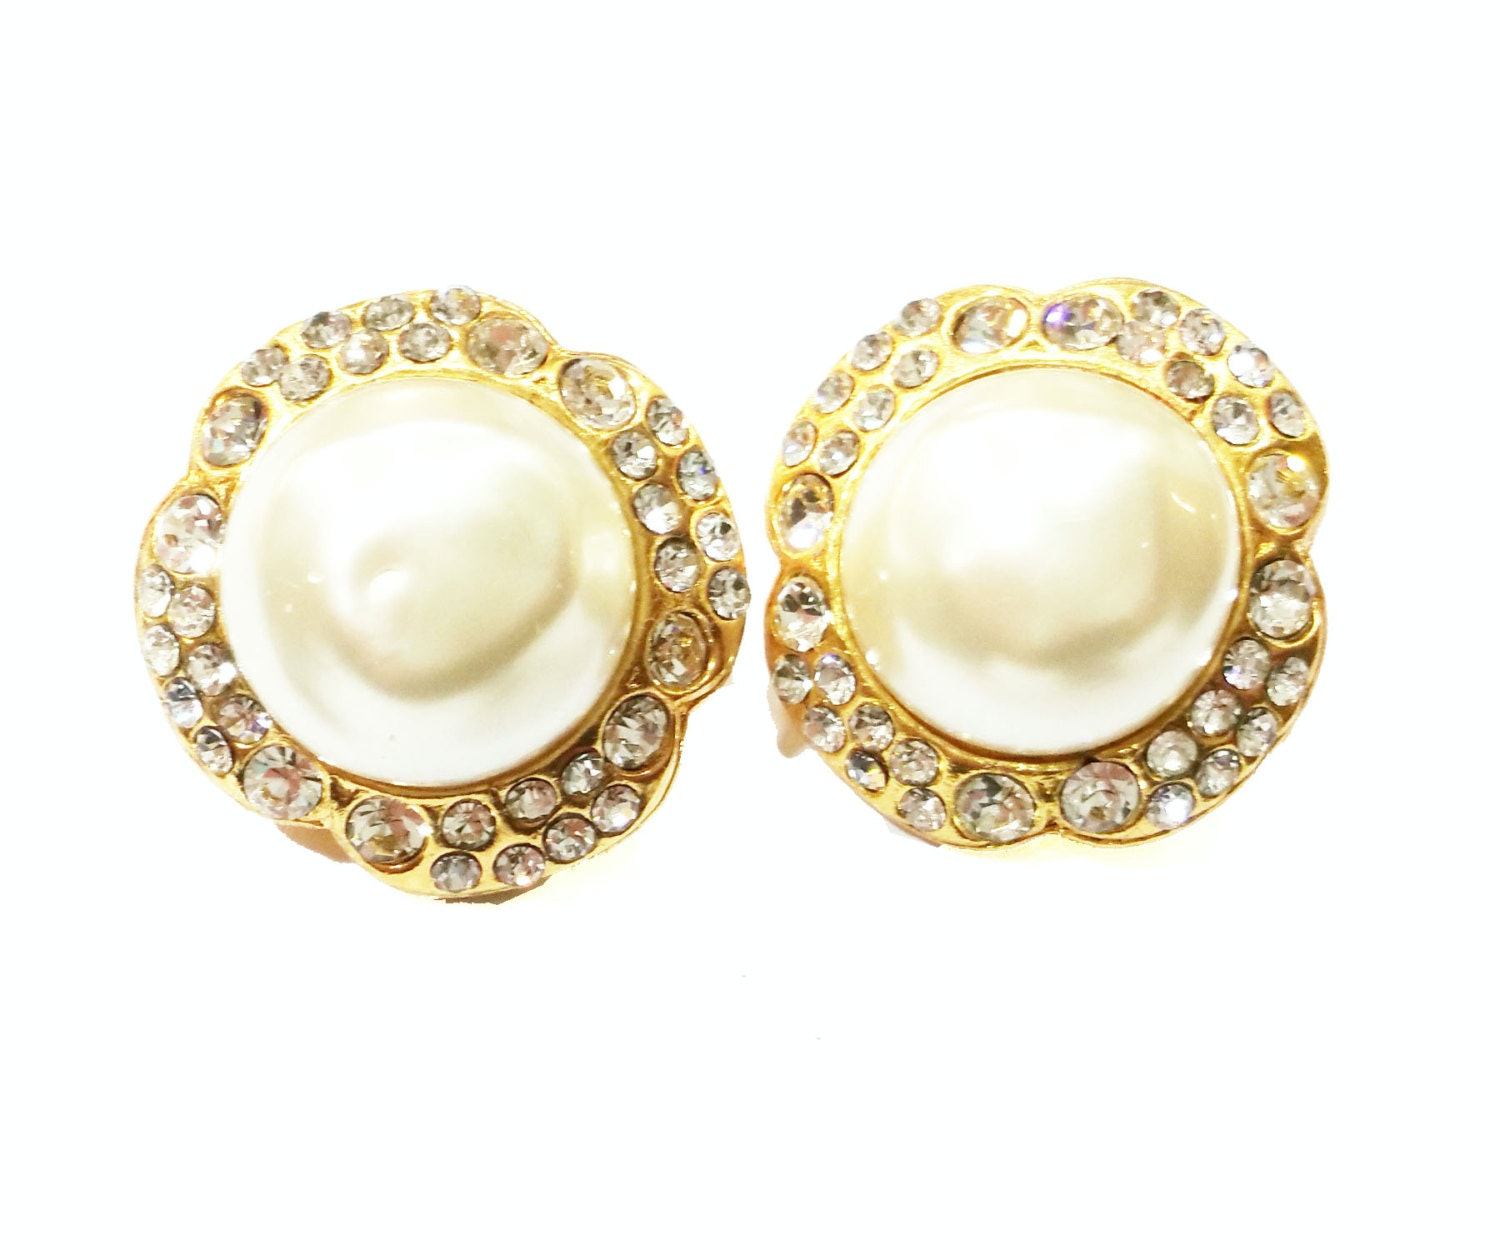 Chanel Vintage Faux Pearl Clip On Earrings Gold Plated Gold/Pearl